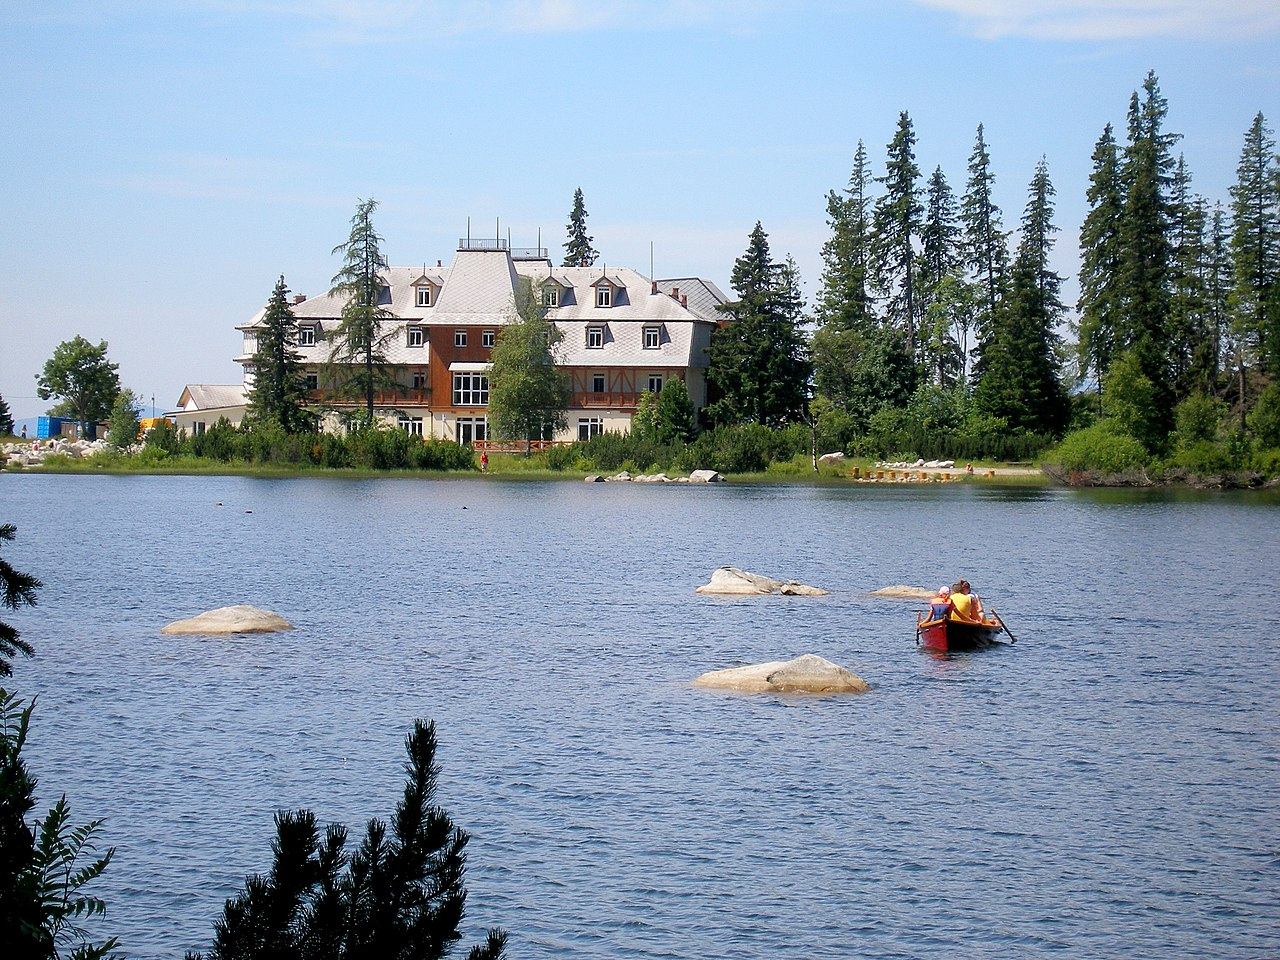 strbske Pleso Slovakia  city photos gallery : Original file ‎ 3,072 × 2,304 pixels, file size: 1.45 MB, MIME ...